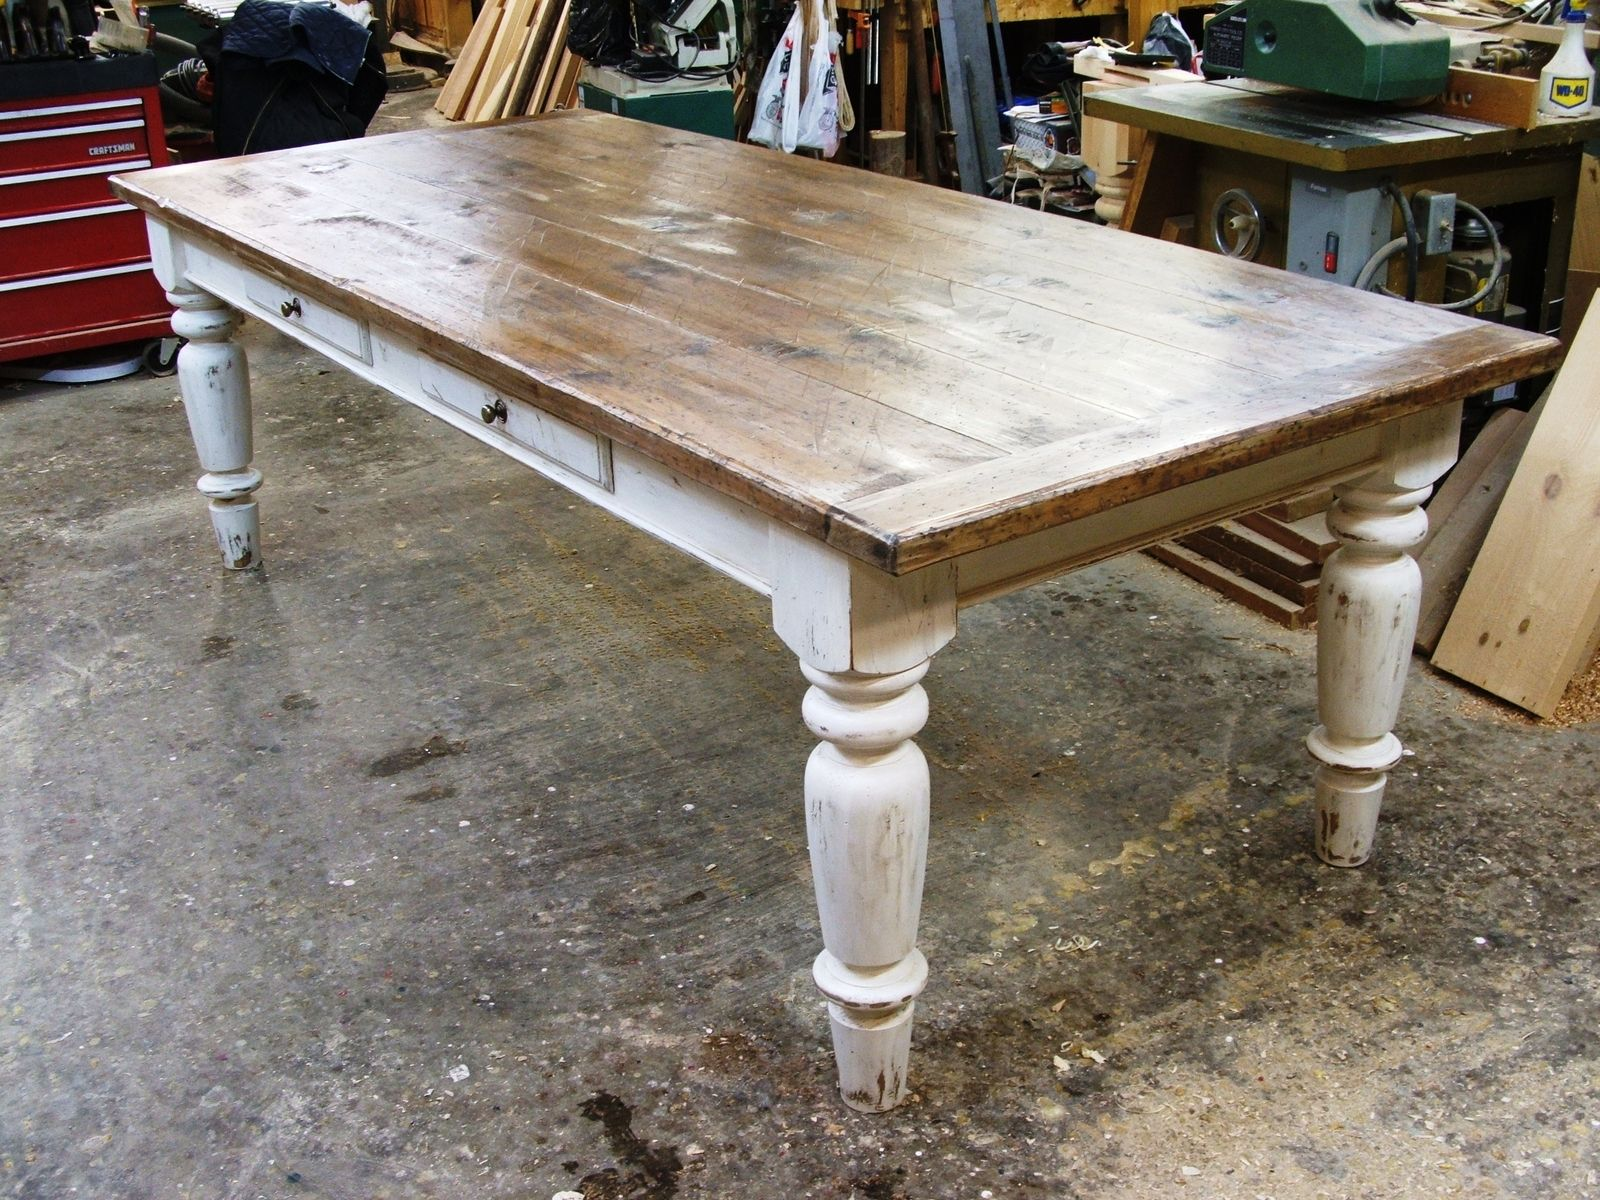 Antique farm dining table - White Scrubbed Pine Farmhouse Table I Love The Look Of A Sturdy Farm Table For